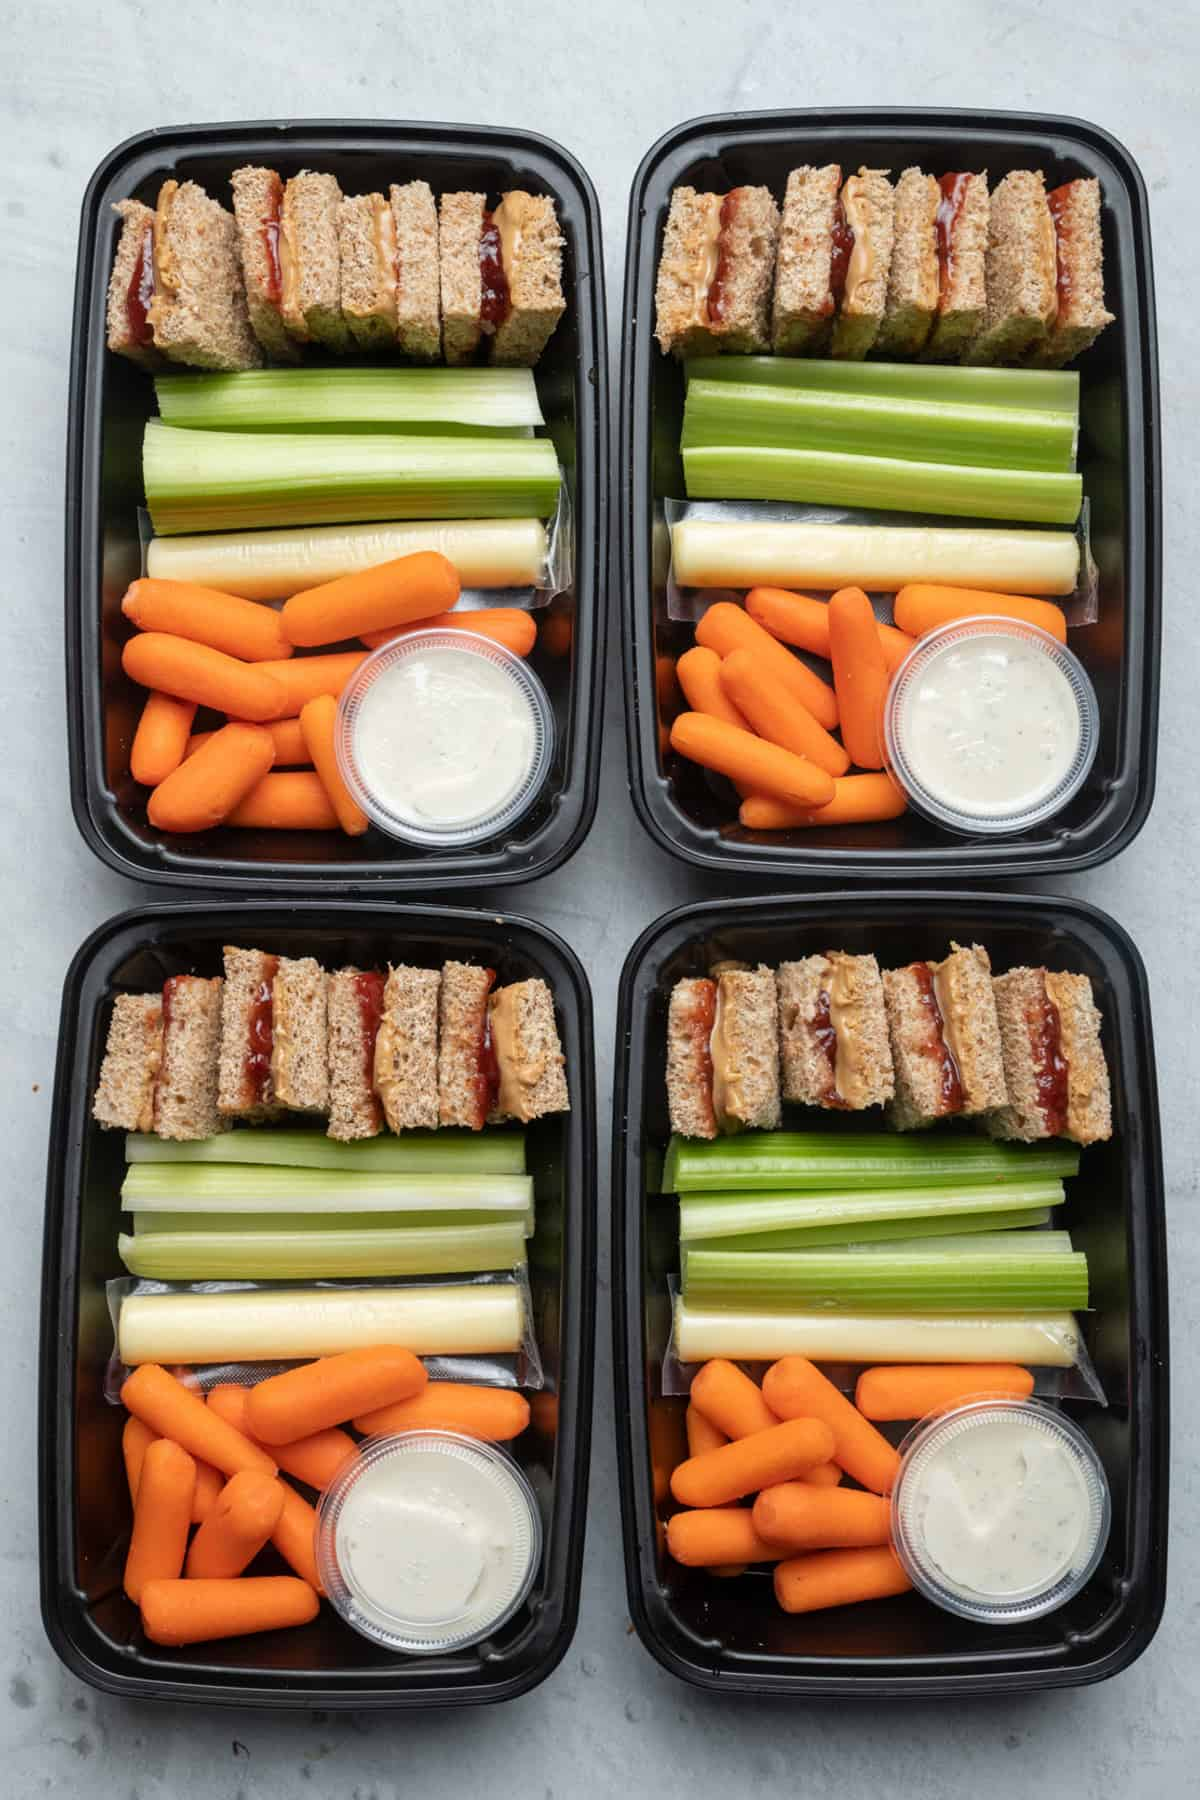 Peanut butter and jelly meal prep containers